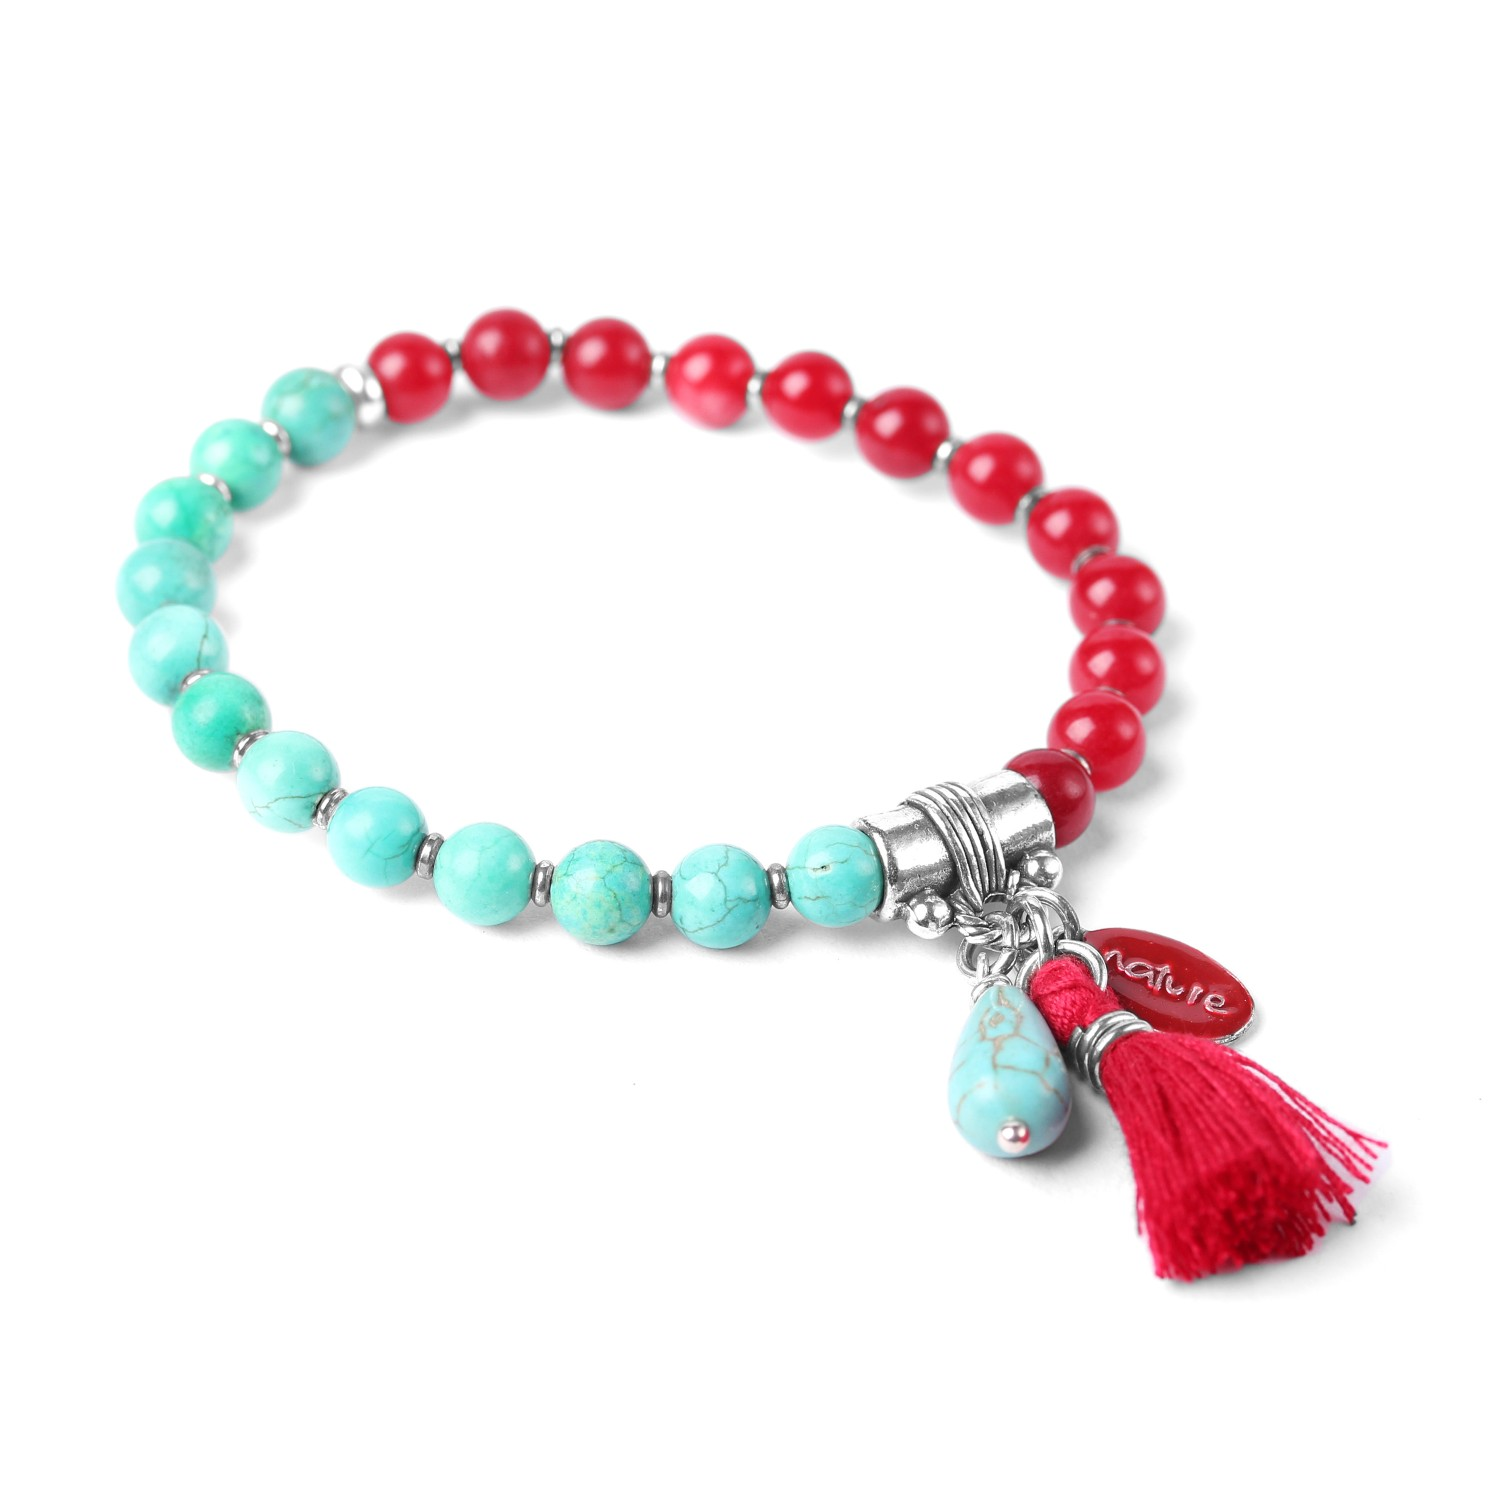 LES DUOS turquoise howlite & dyed jade bracelet